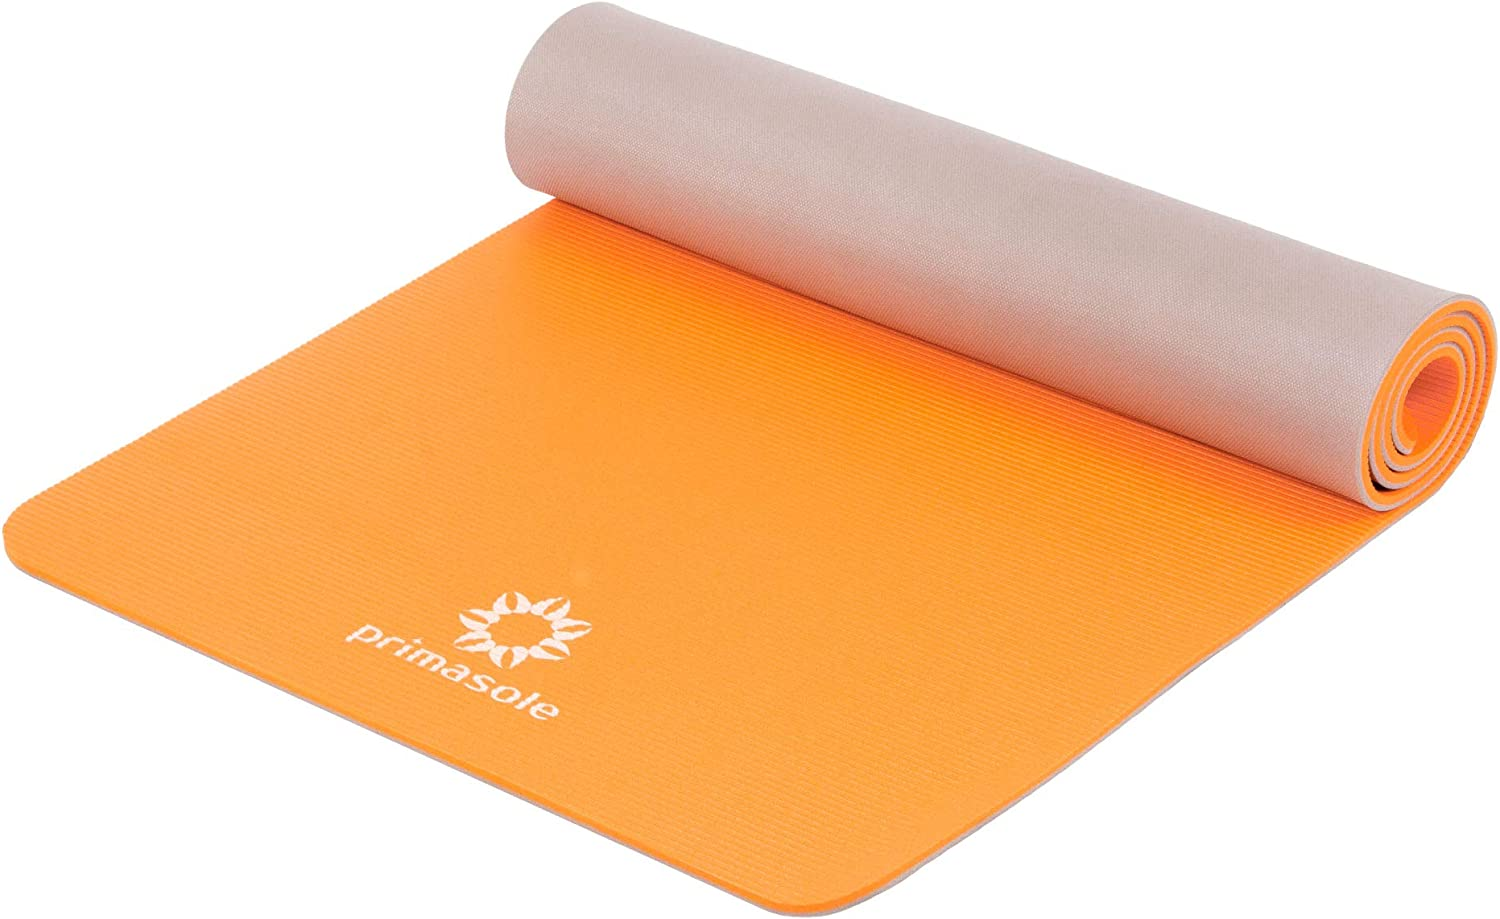 Primasole 【 Limited Brand】 Yoga Mat Folding Black Color Fitness Pilates 68 L/×24 W/×1//4 Inch Thick PSS91NH048A